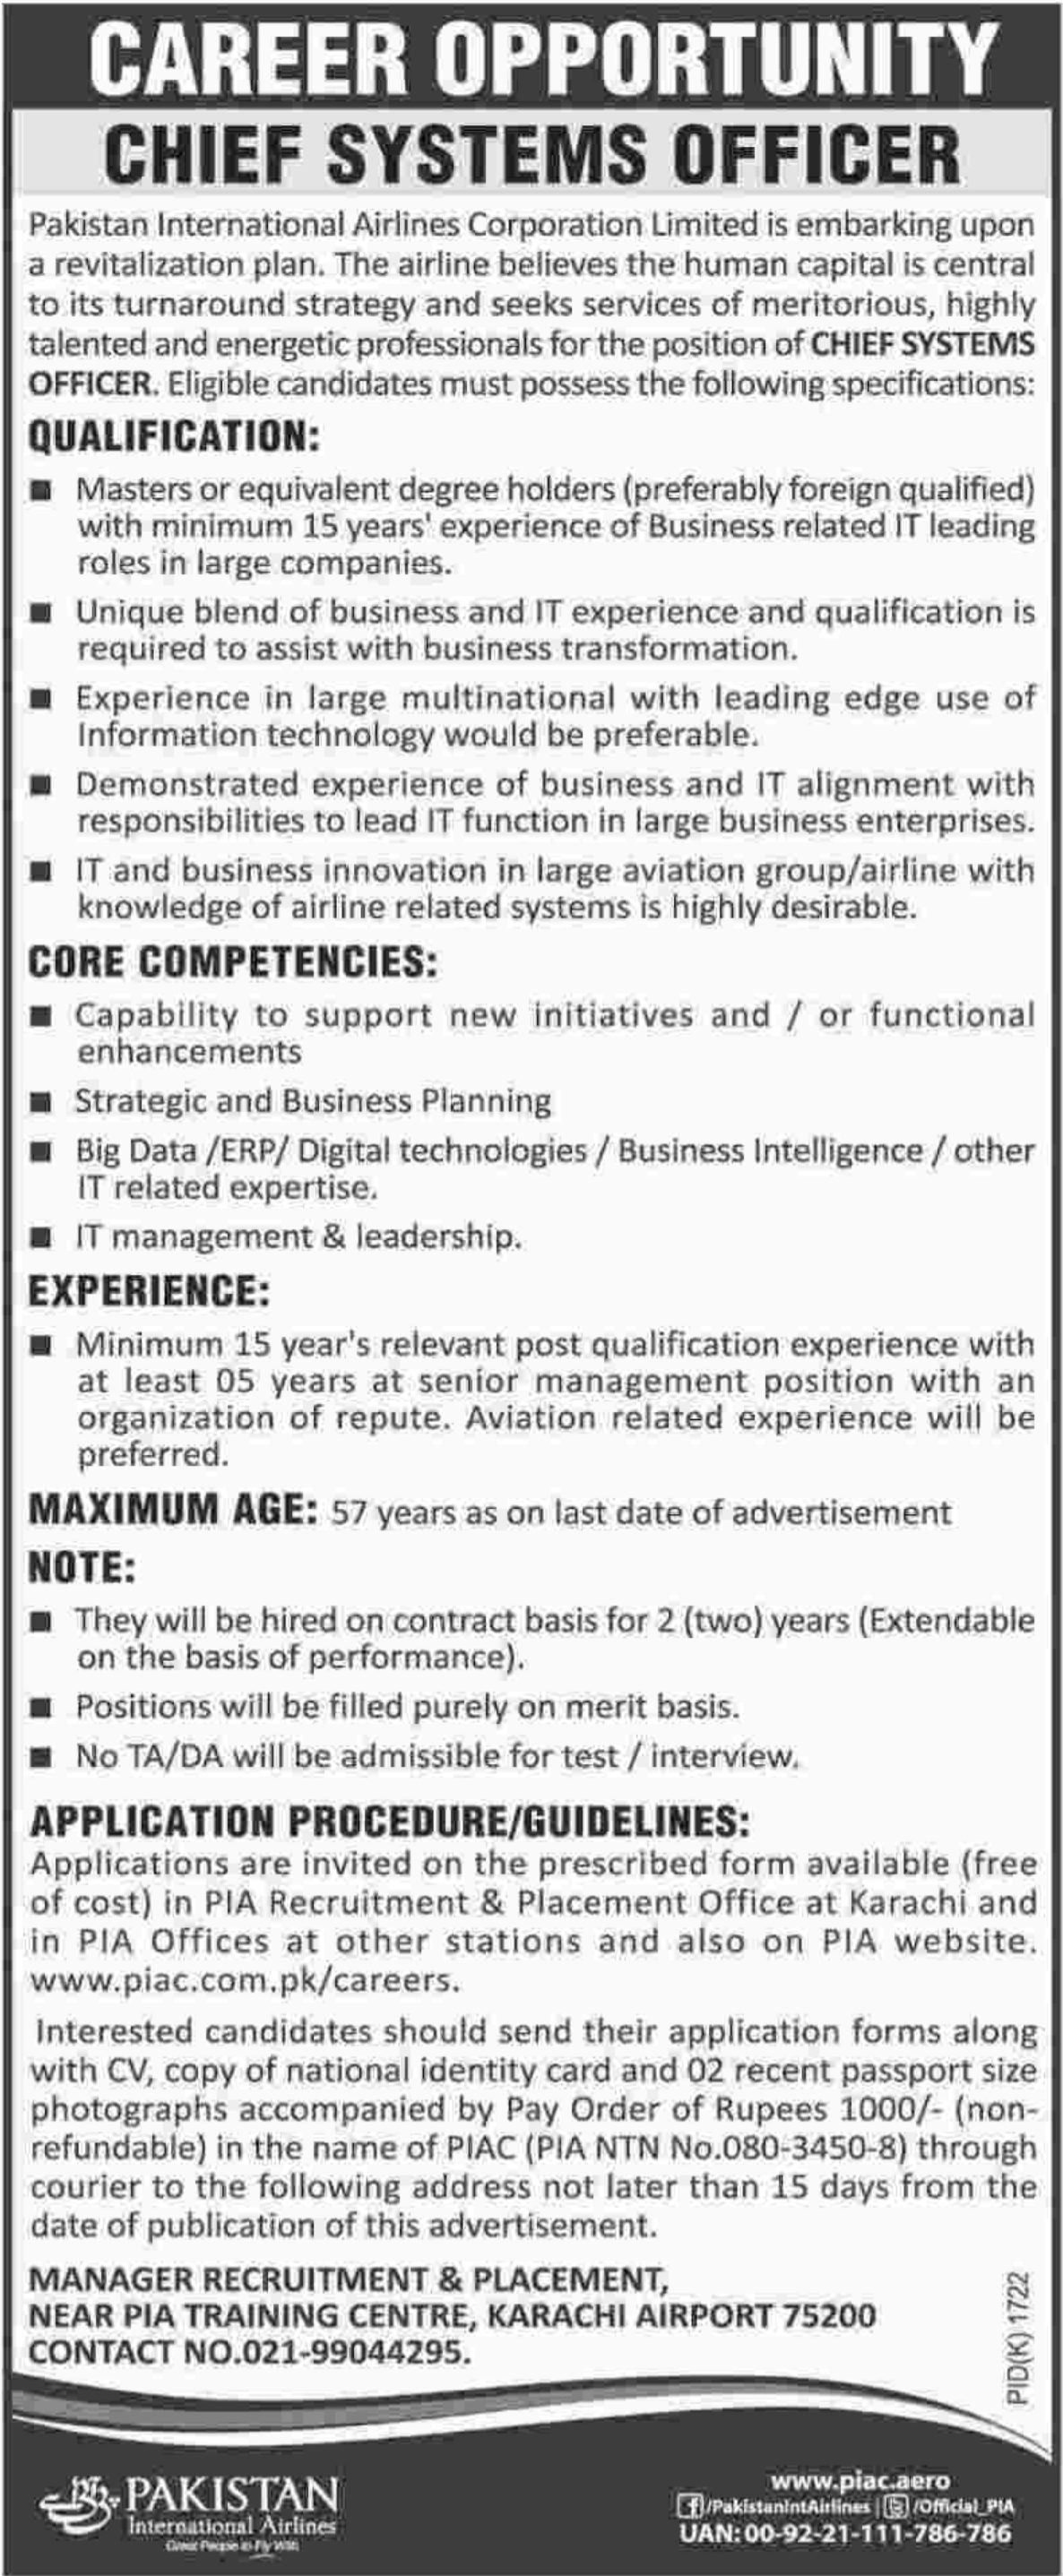 PIA Jobs 2017 Pakistan International Airlines Corporation